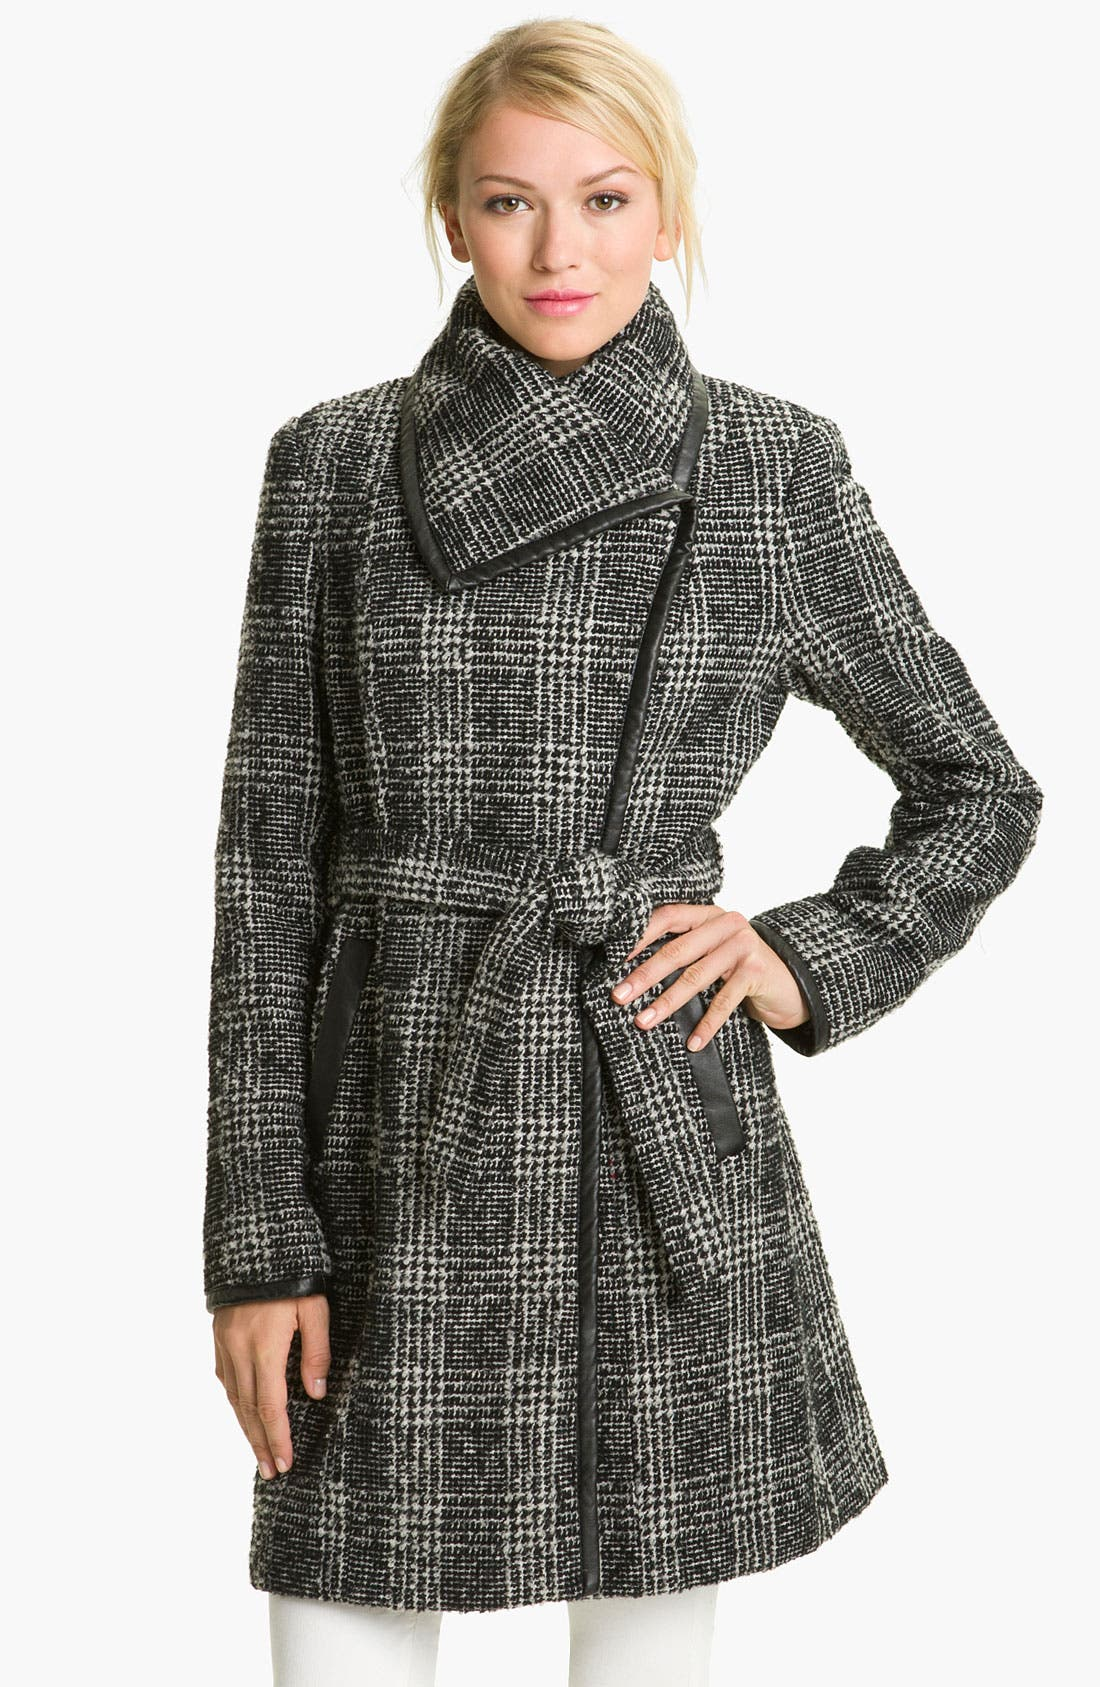 Alternate Image 1 Selected - Vince Camuto Plaid Wrap Coat